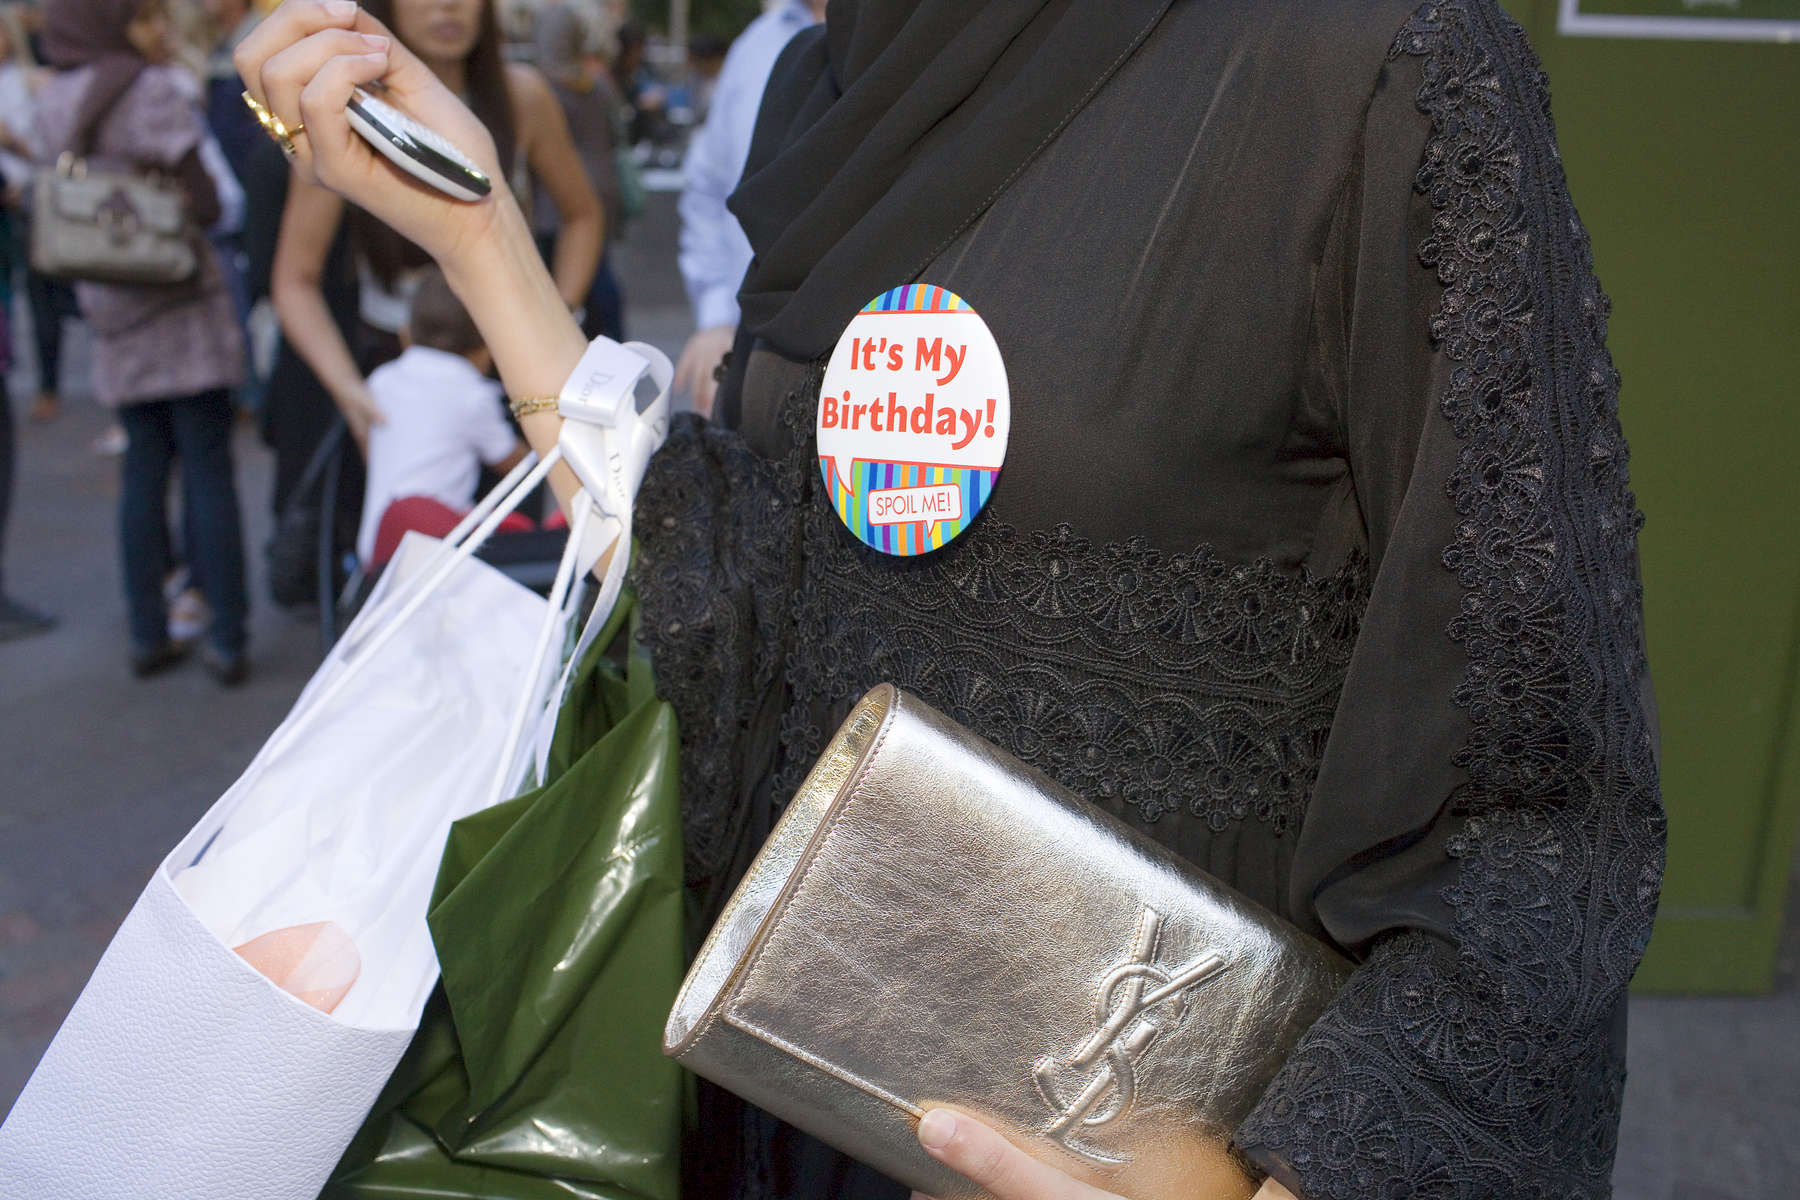 An Arab woman wearing an 'It's Mt Birthday!' badge clutching an Yves Saint Lauren bag and a mobile phone outside Harrod's.The Knightsbrdige district store Harrods owned by the Qatar Holding Group is a popular shopping destination for Arabs in London.Arabs have been visiting London for centuries and around 300,000 Arabs have chosen to make the capital their home and a further half a million throughout the UK. The number swells significantly from visitors during the summer. Saudi Arabians spend the most on property in London choosing Belgravia, Kenington, Knightsbridge and Holland Park. Arab culture continues to increase in visibility throughout the capital as integration into this most transient of city's continues.©Peter Dench/Reportage by Getty Images